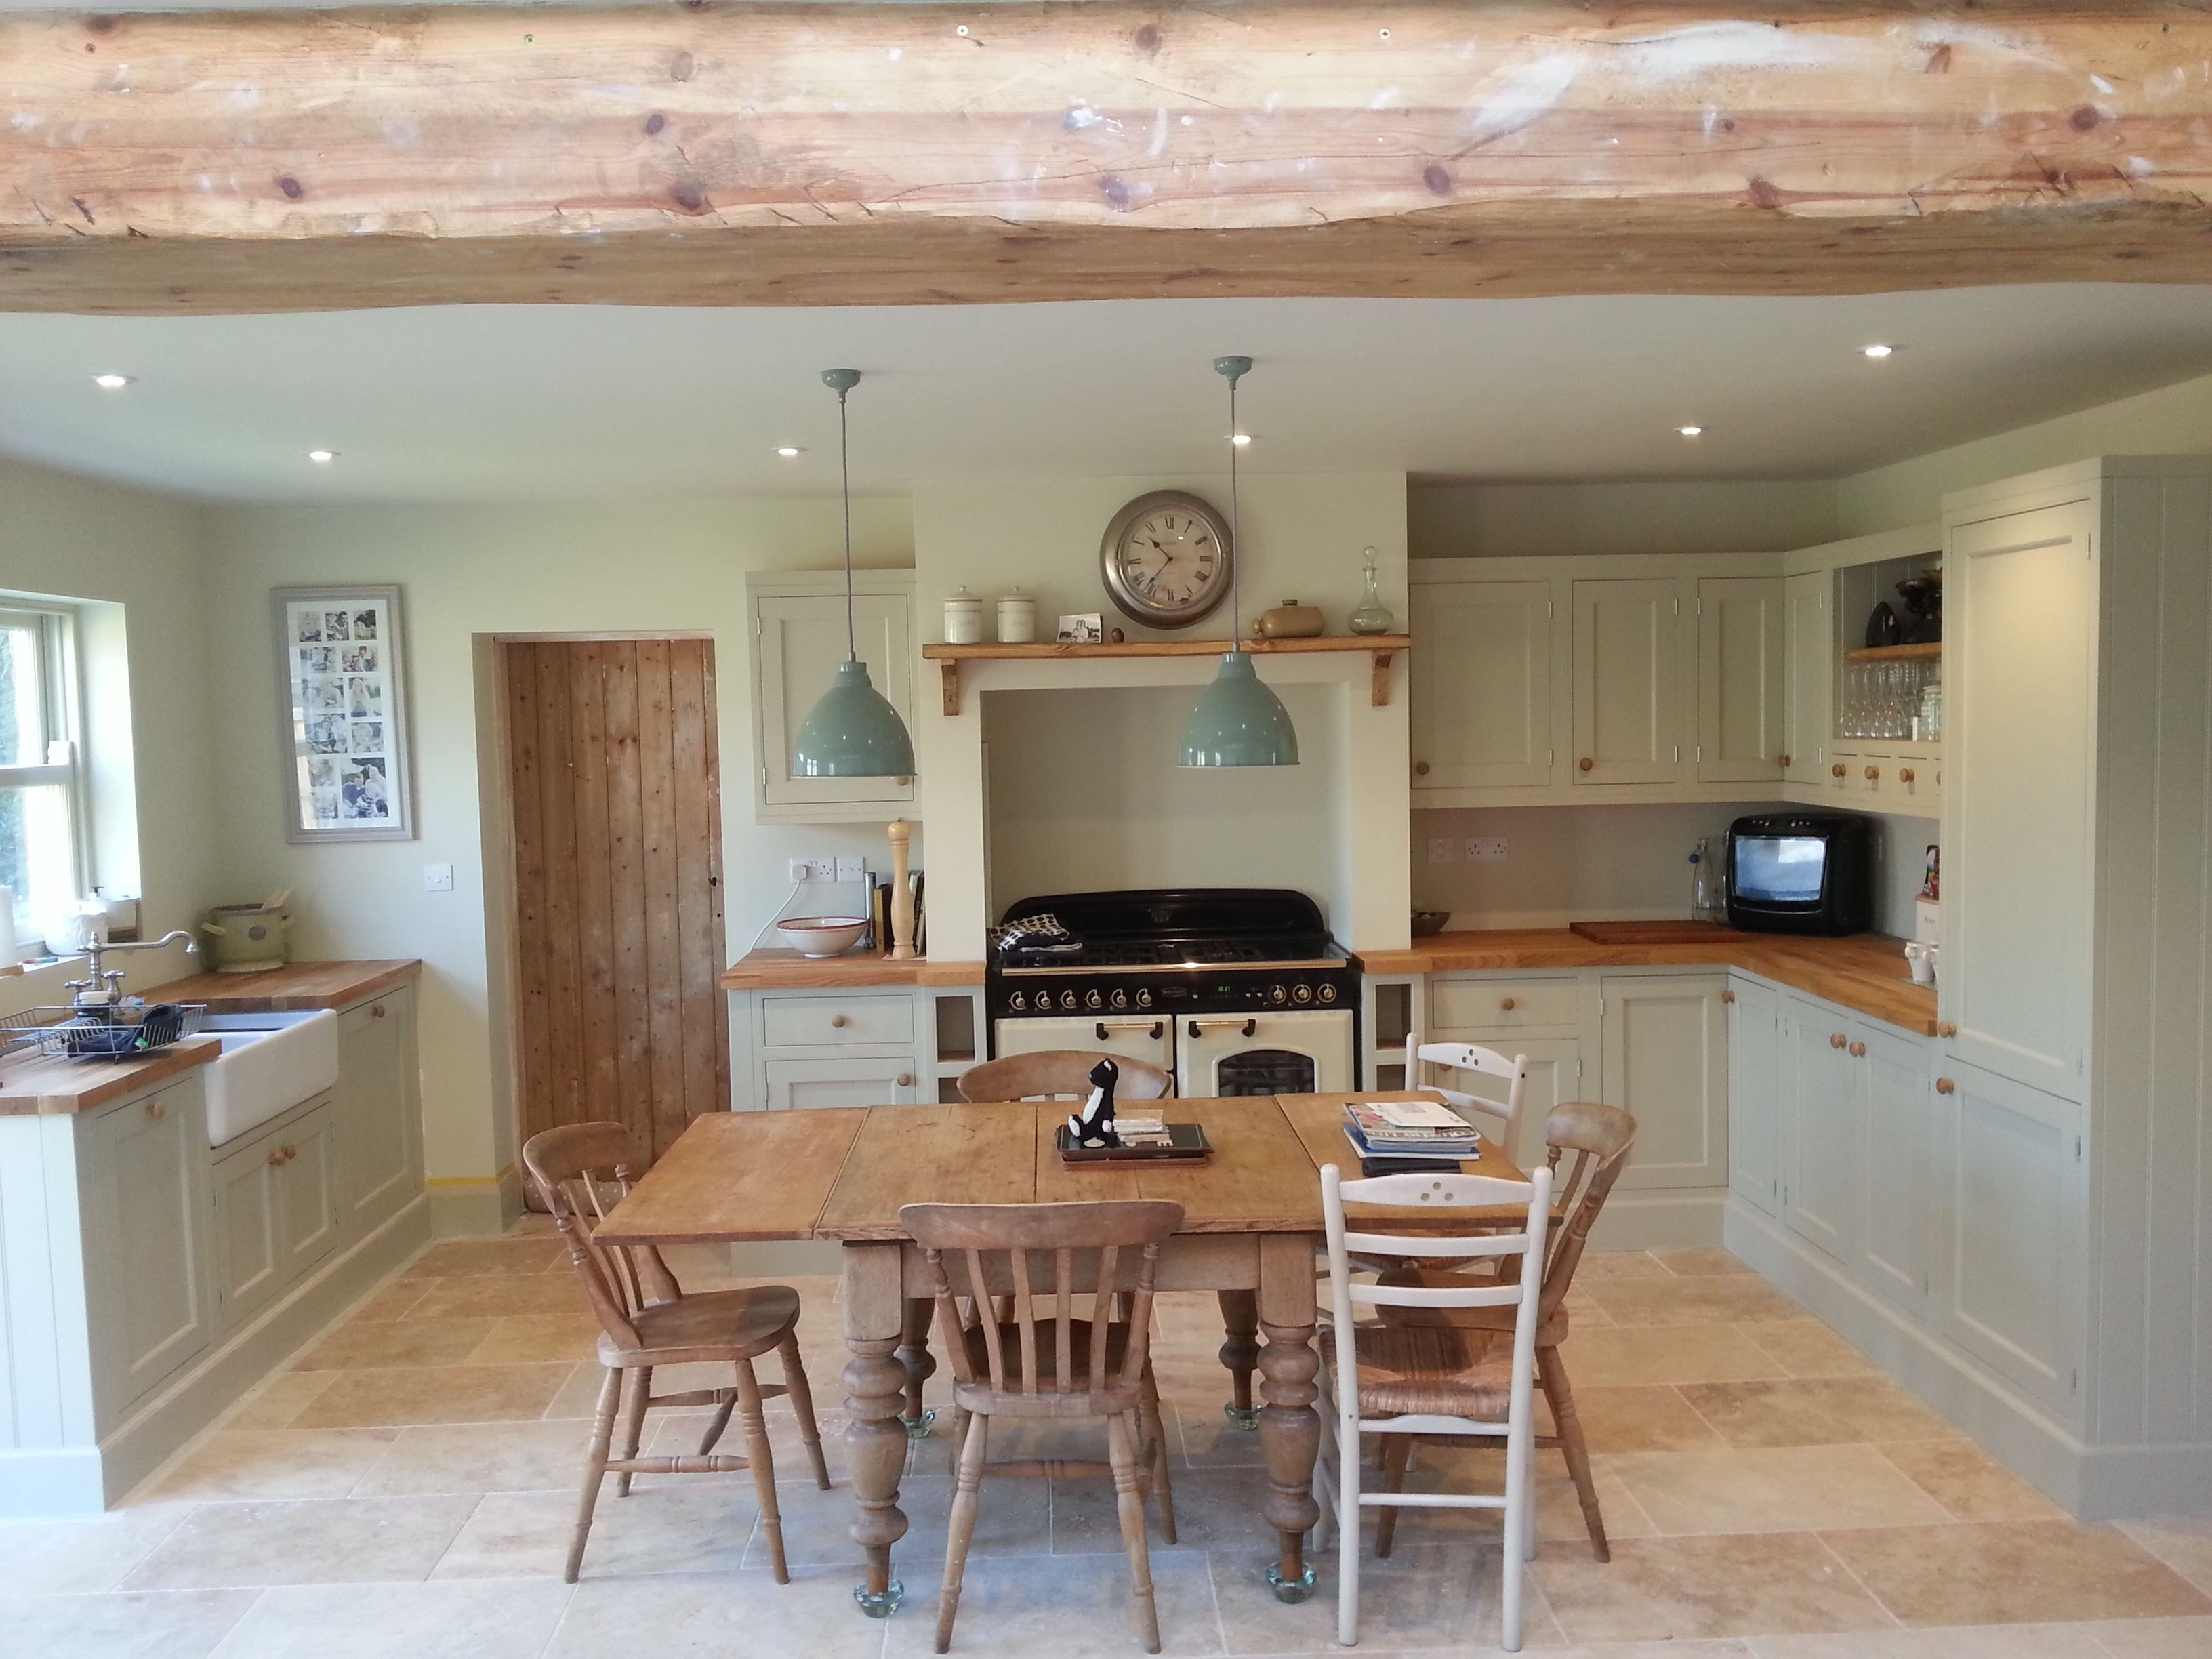 East Norwich Country Kitchen Beautiful Kitchen Renovation Picture Send To Us From Our Lovely